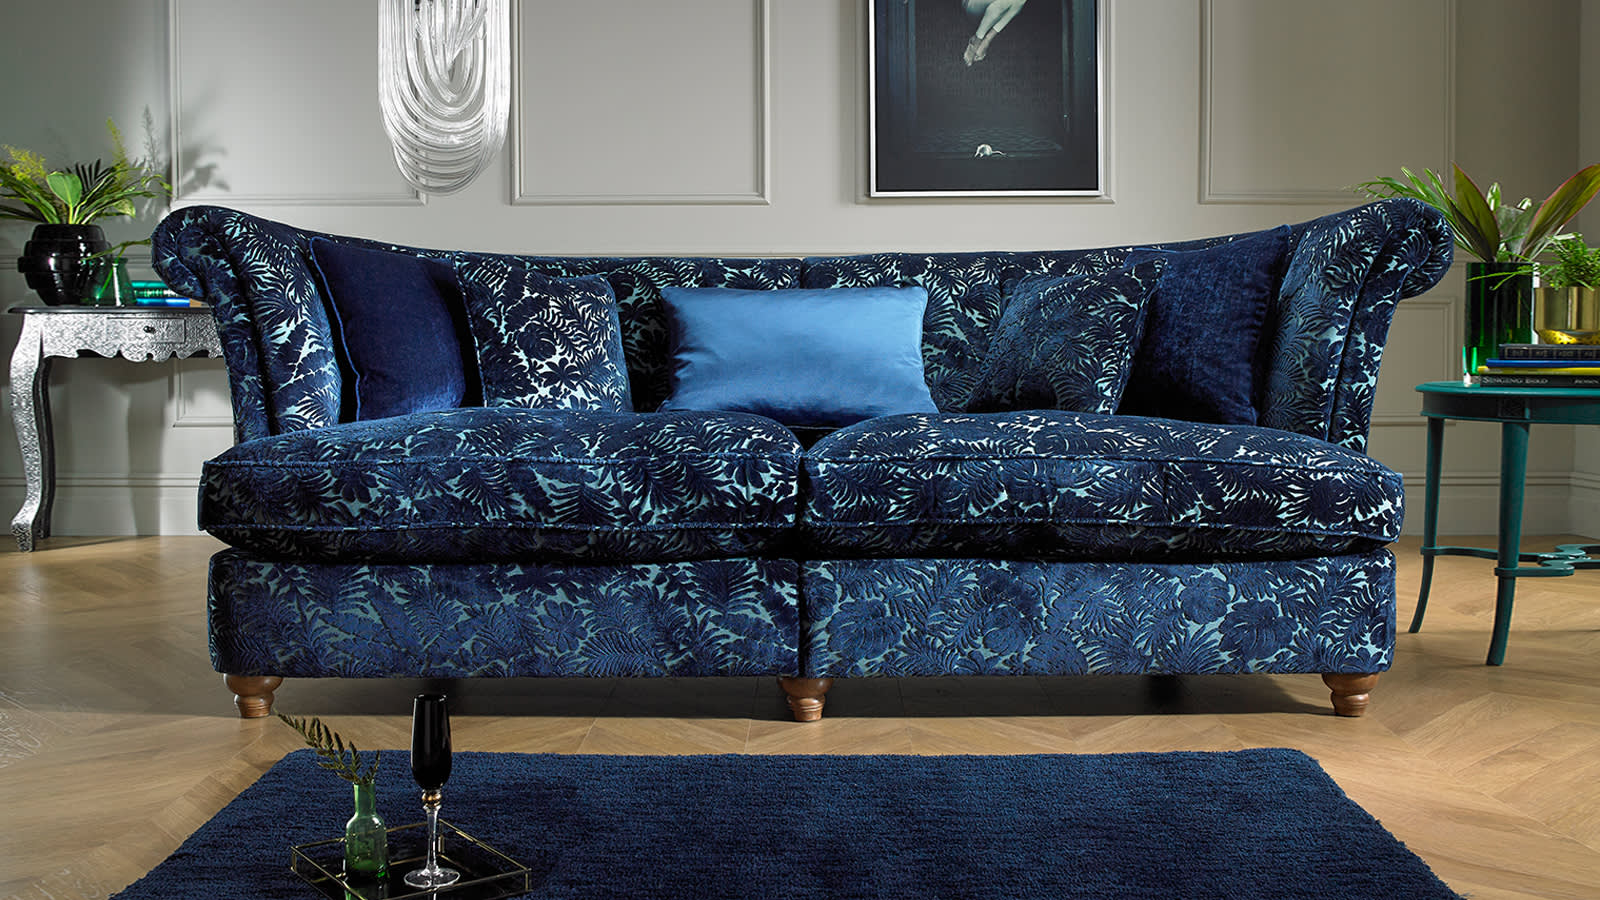 Blue Etienne fabric sofa